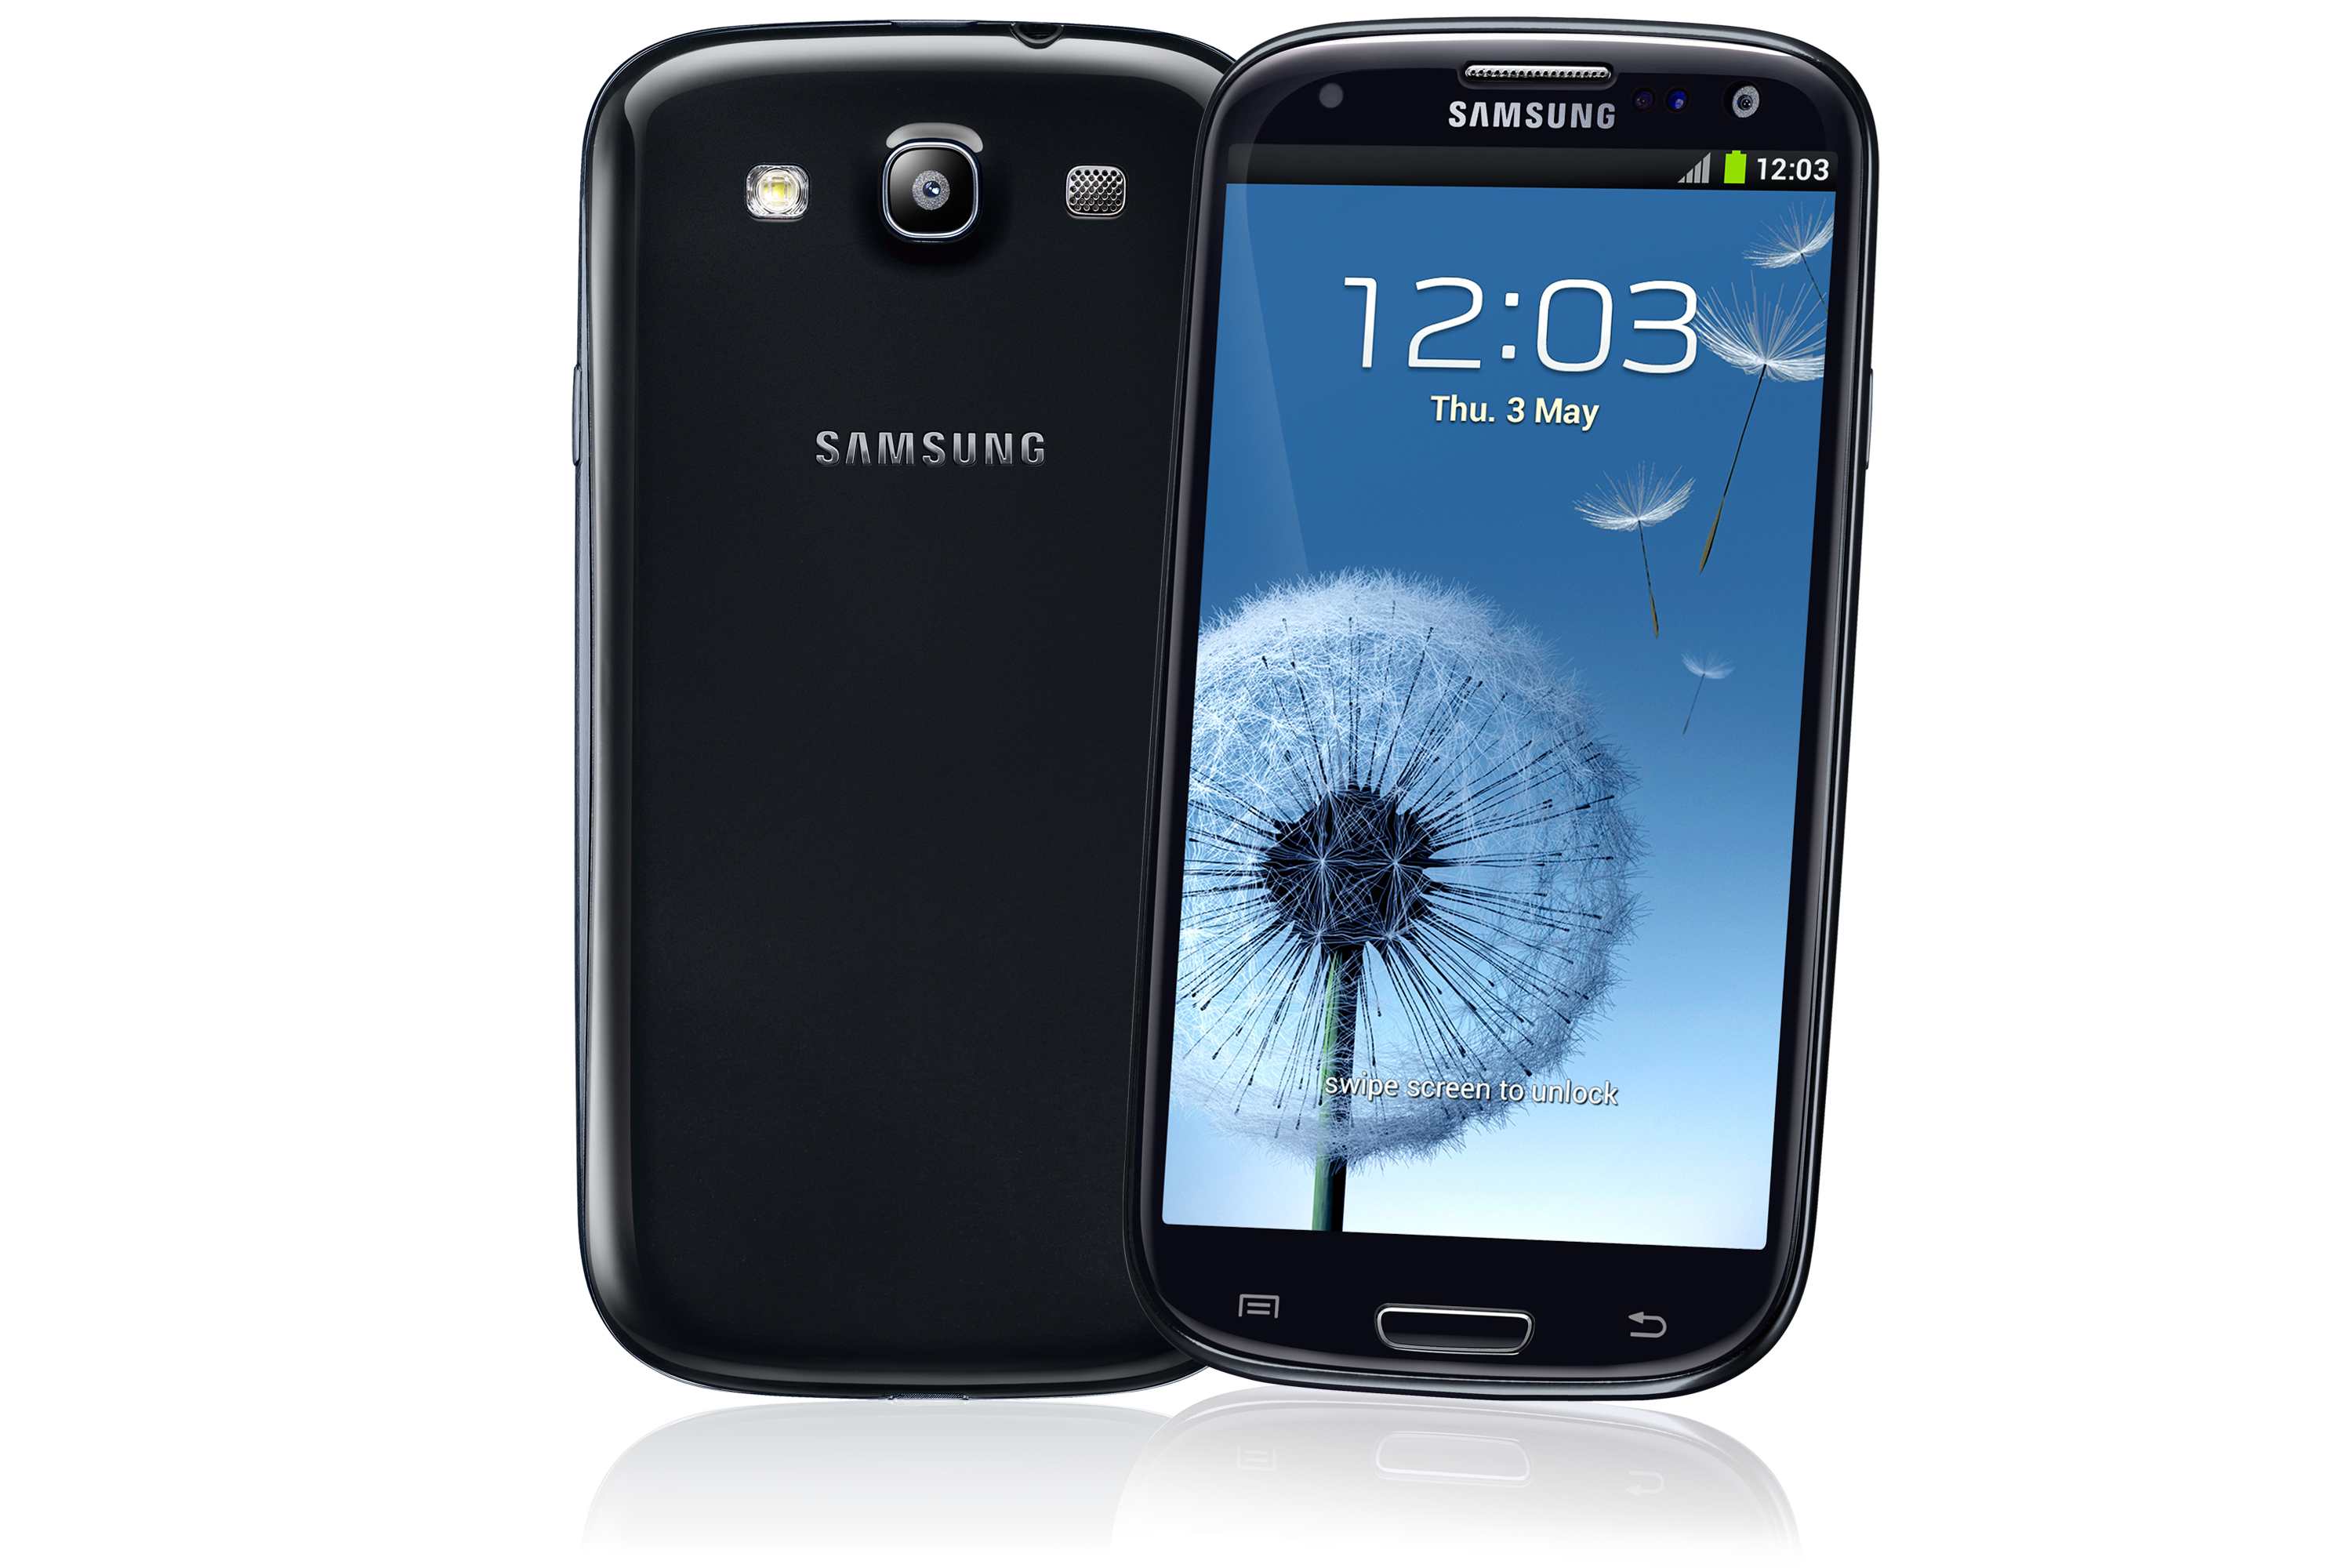 samsung set to launch the galaxy s3 neo in india sammobile. Black Bedroom Furniture Sets. Home Design Ideas